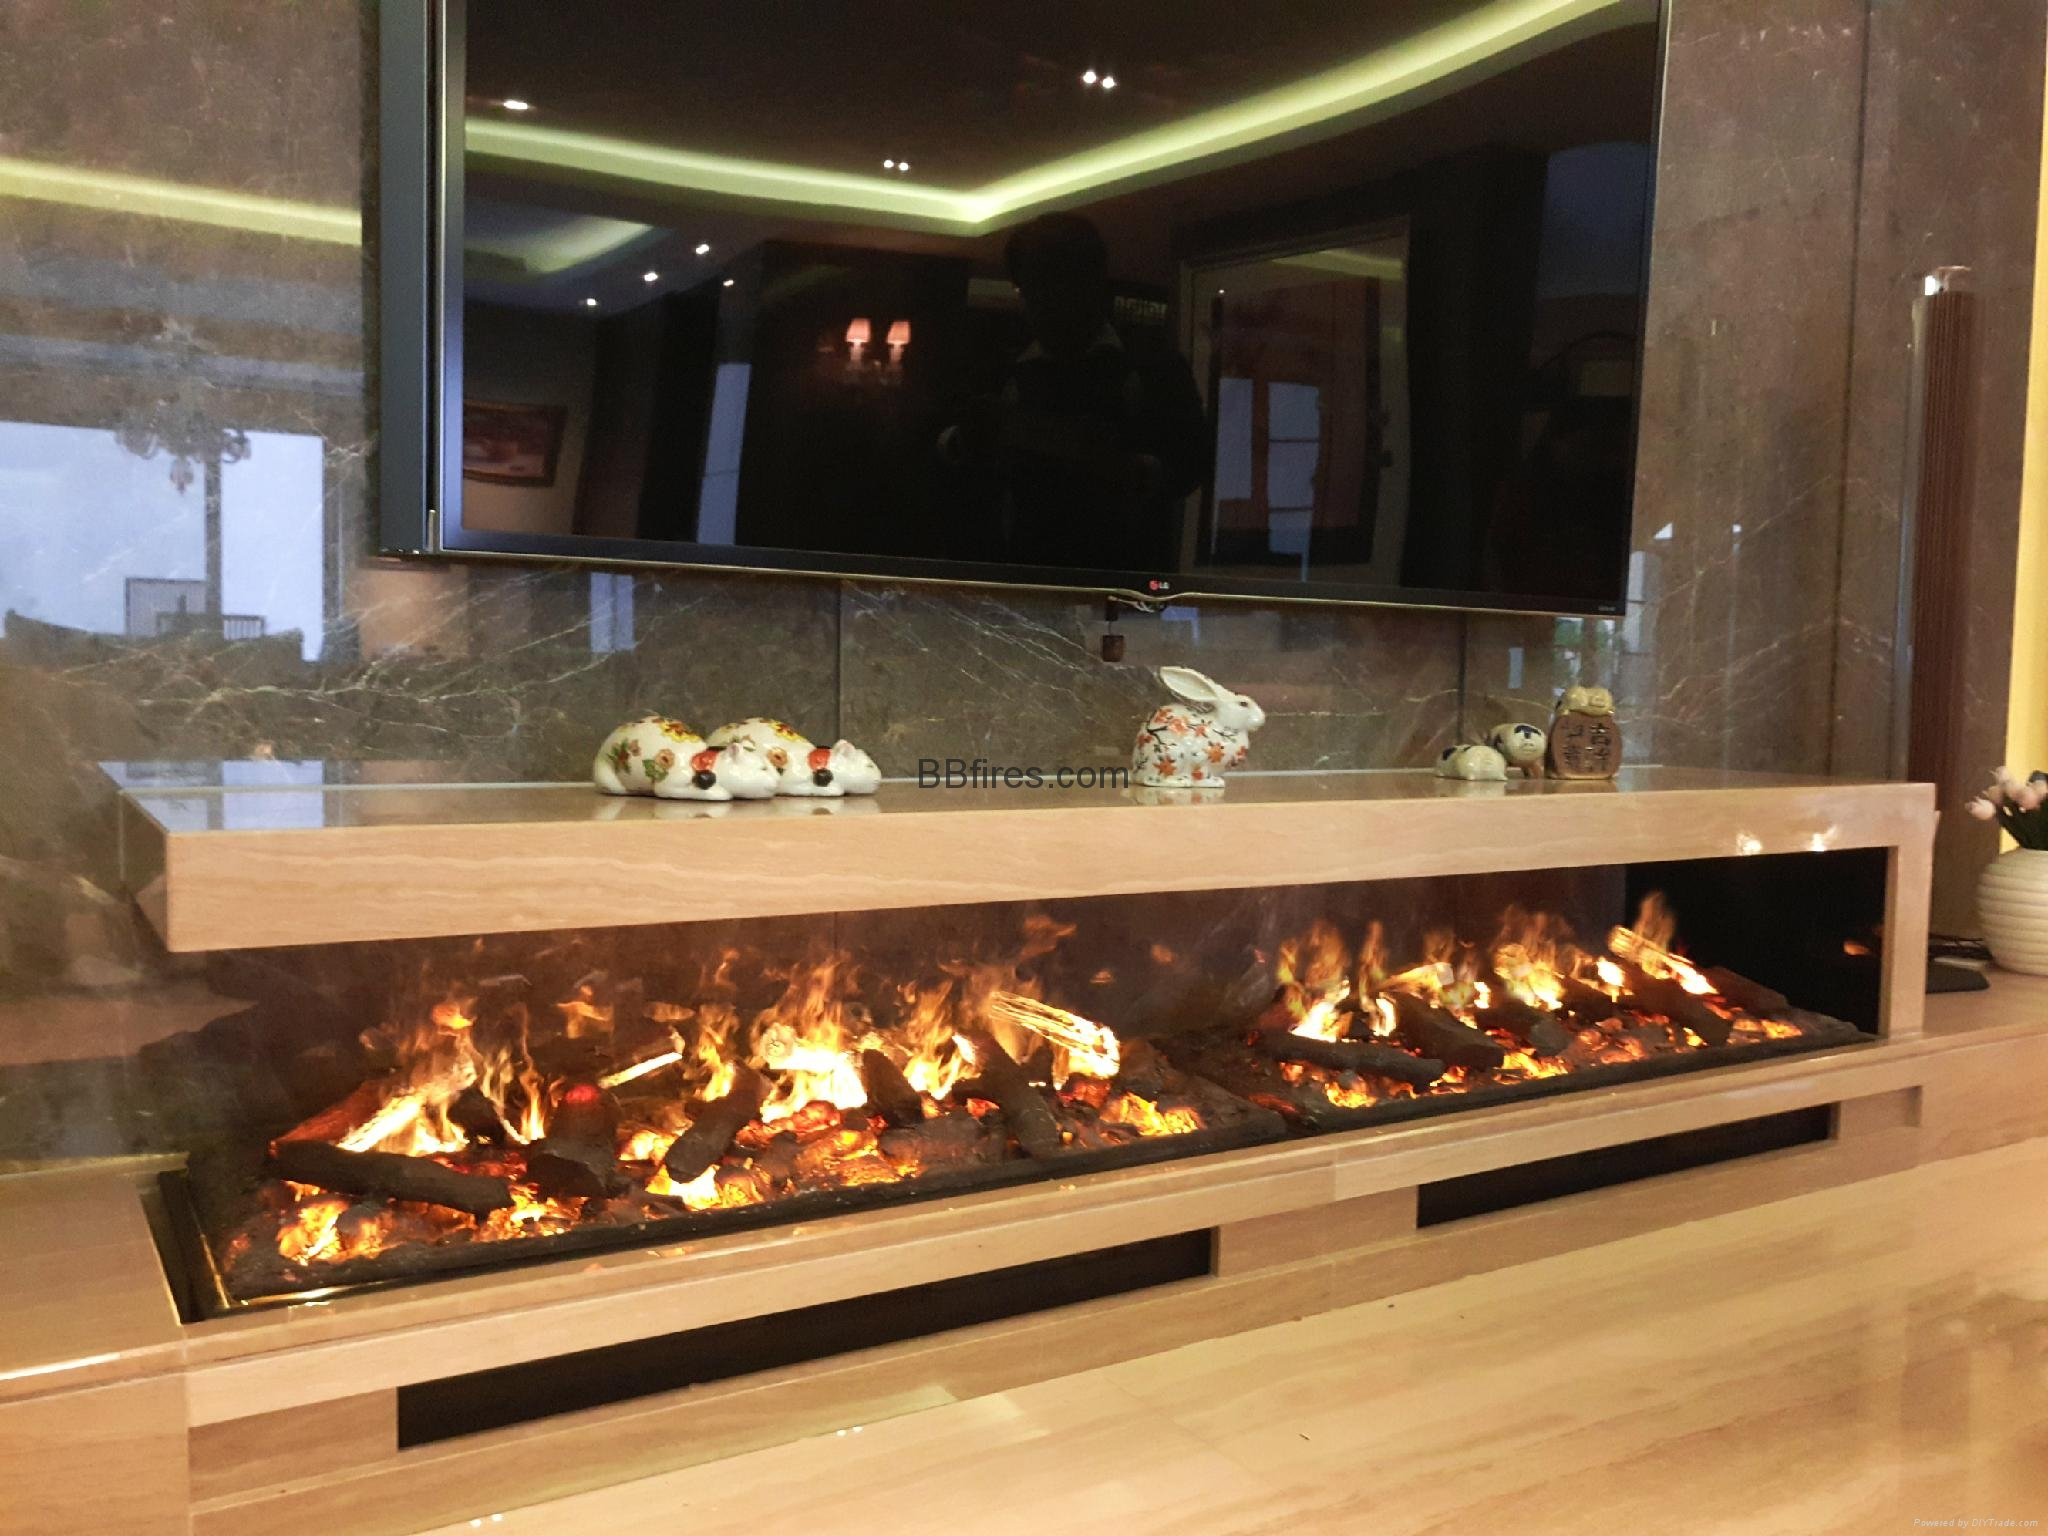 electric water kw dimplex product with sacramento fireplace fire optimyst image d inset vapor